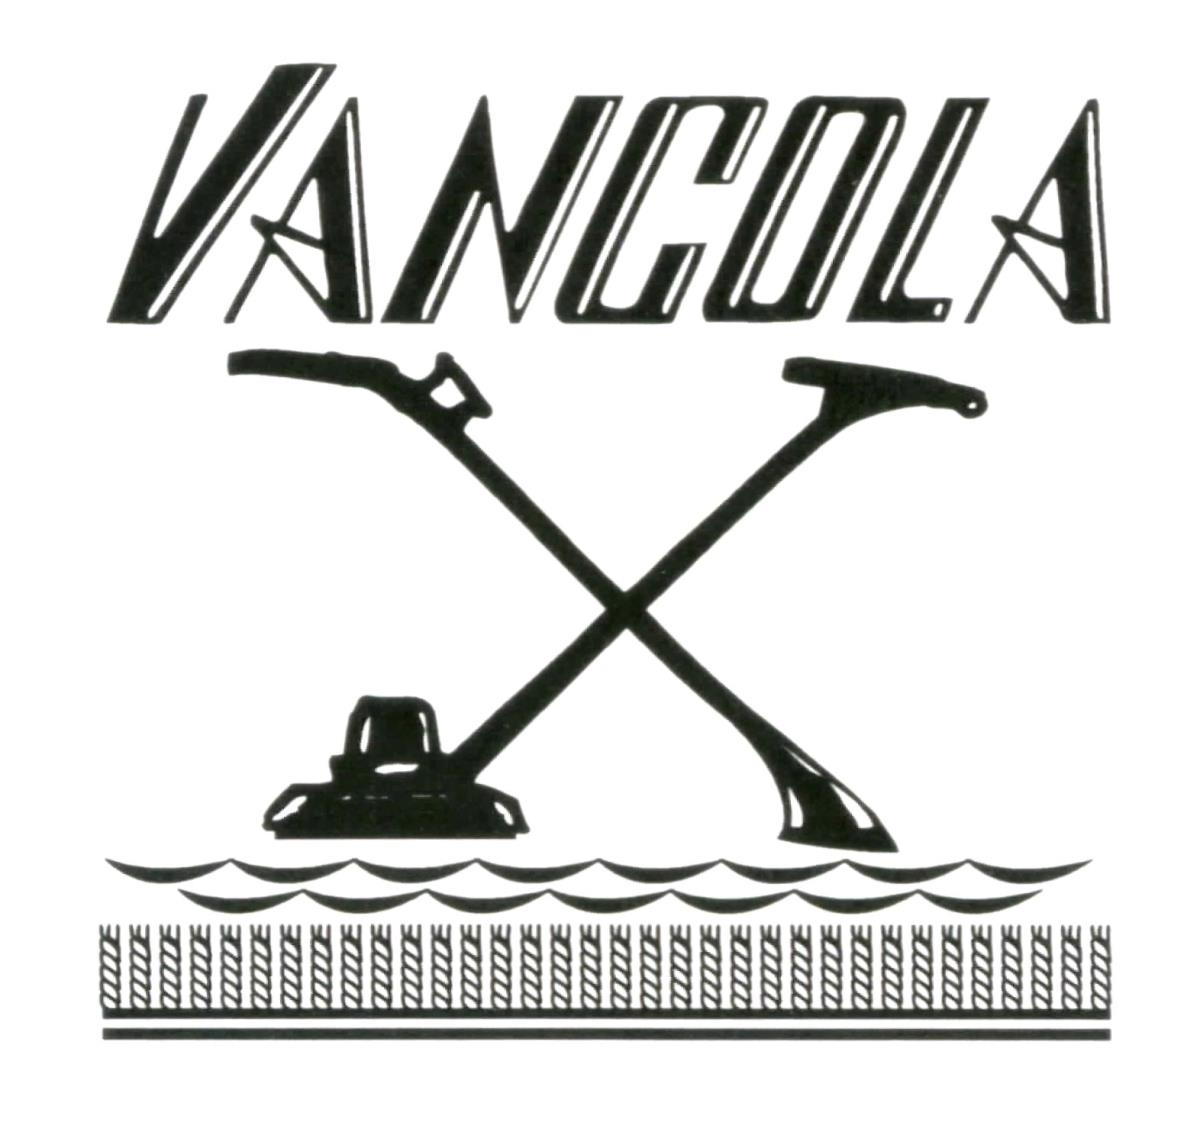 A Action Vancola Carpet Upholstery Tile Pressure Cleaning